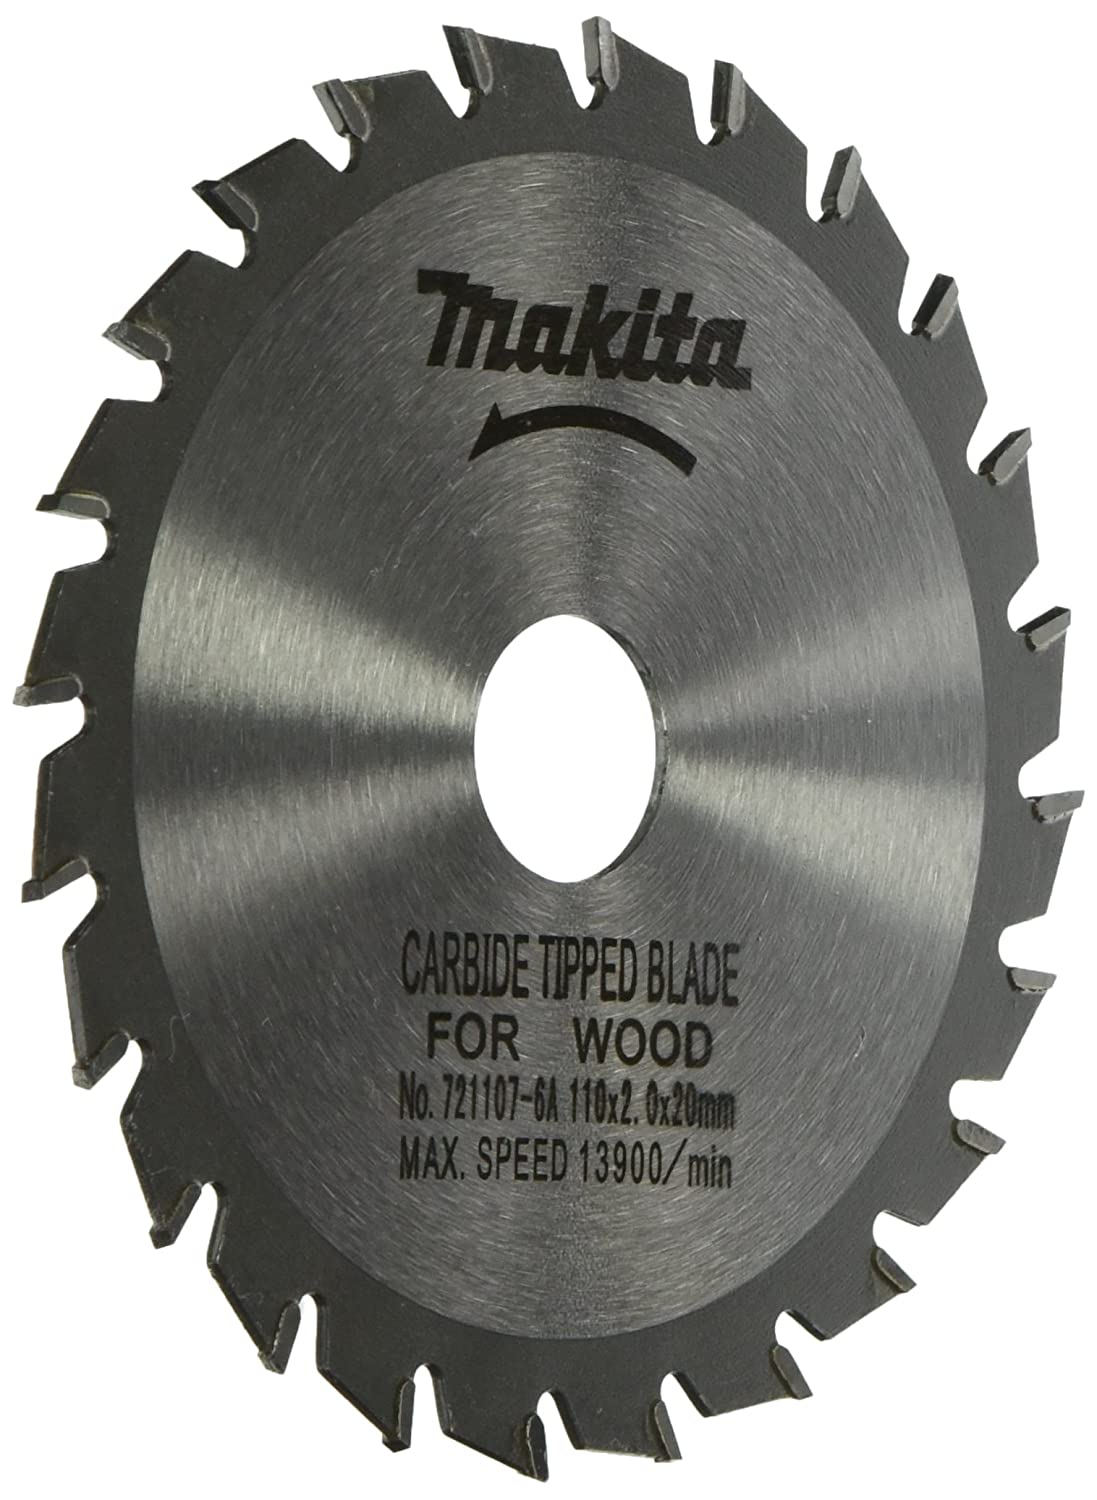 Makita 721107 6a 4 38 inch 24 tooth atb saw blade with 20mm arbor makita 721107 6a 4 38 inch 24 tooth atb saw blade with 20mm arbor circular saw blades amazon greentooth Image collections